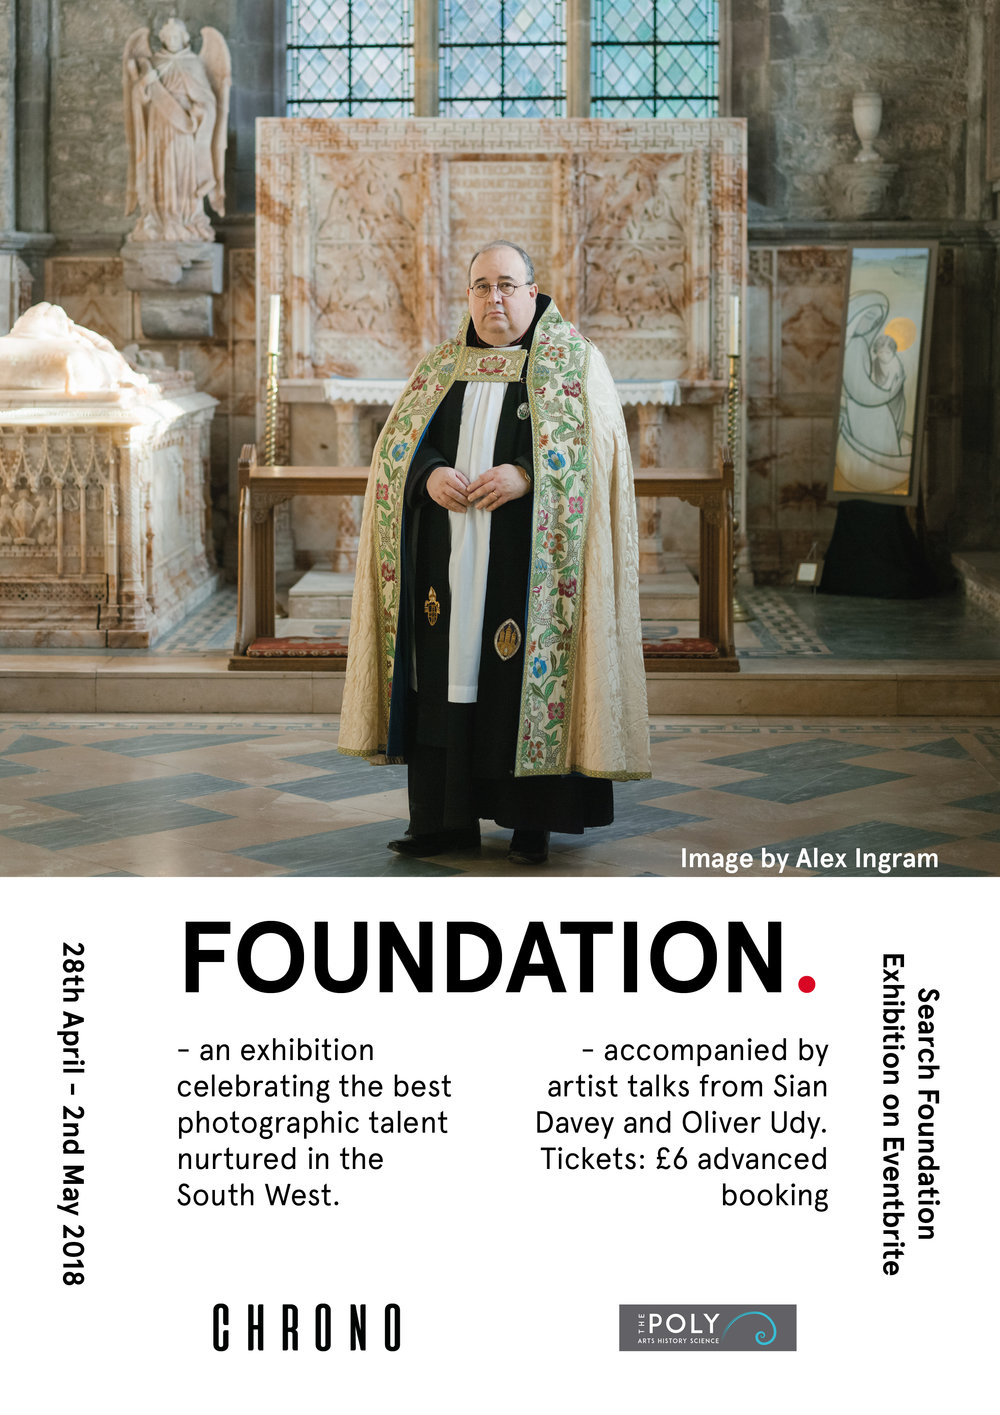 foundation_poster_alex.jpg